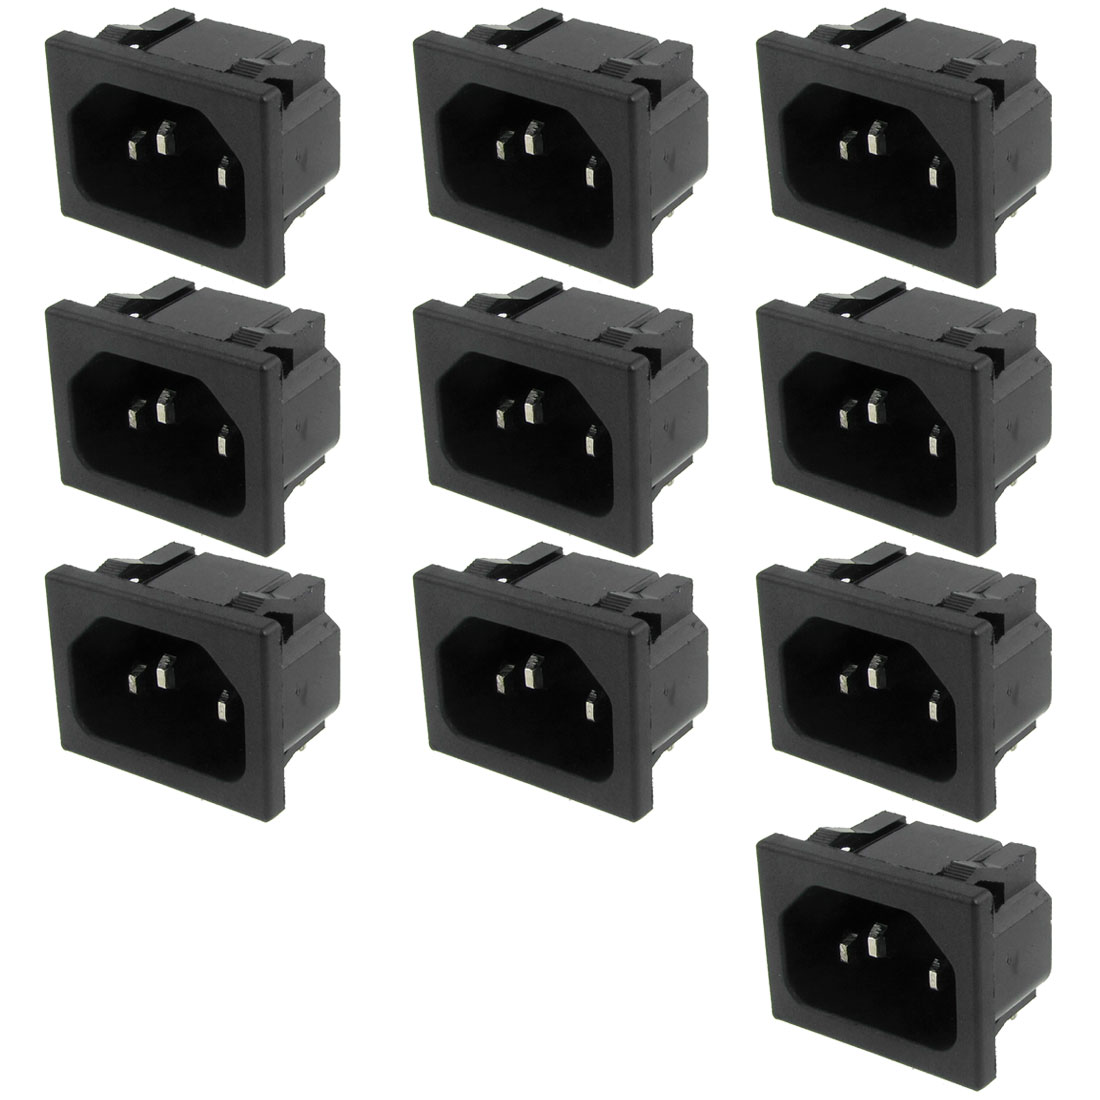 10 Pcs AC 250V 10A 3P C14 Connector Panel Mount Power Inlet Socket